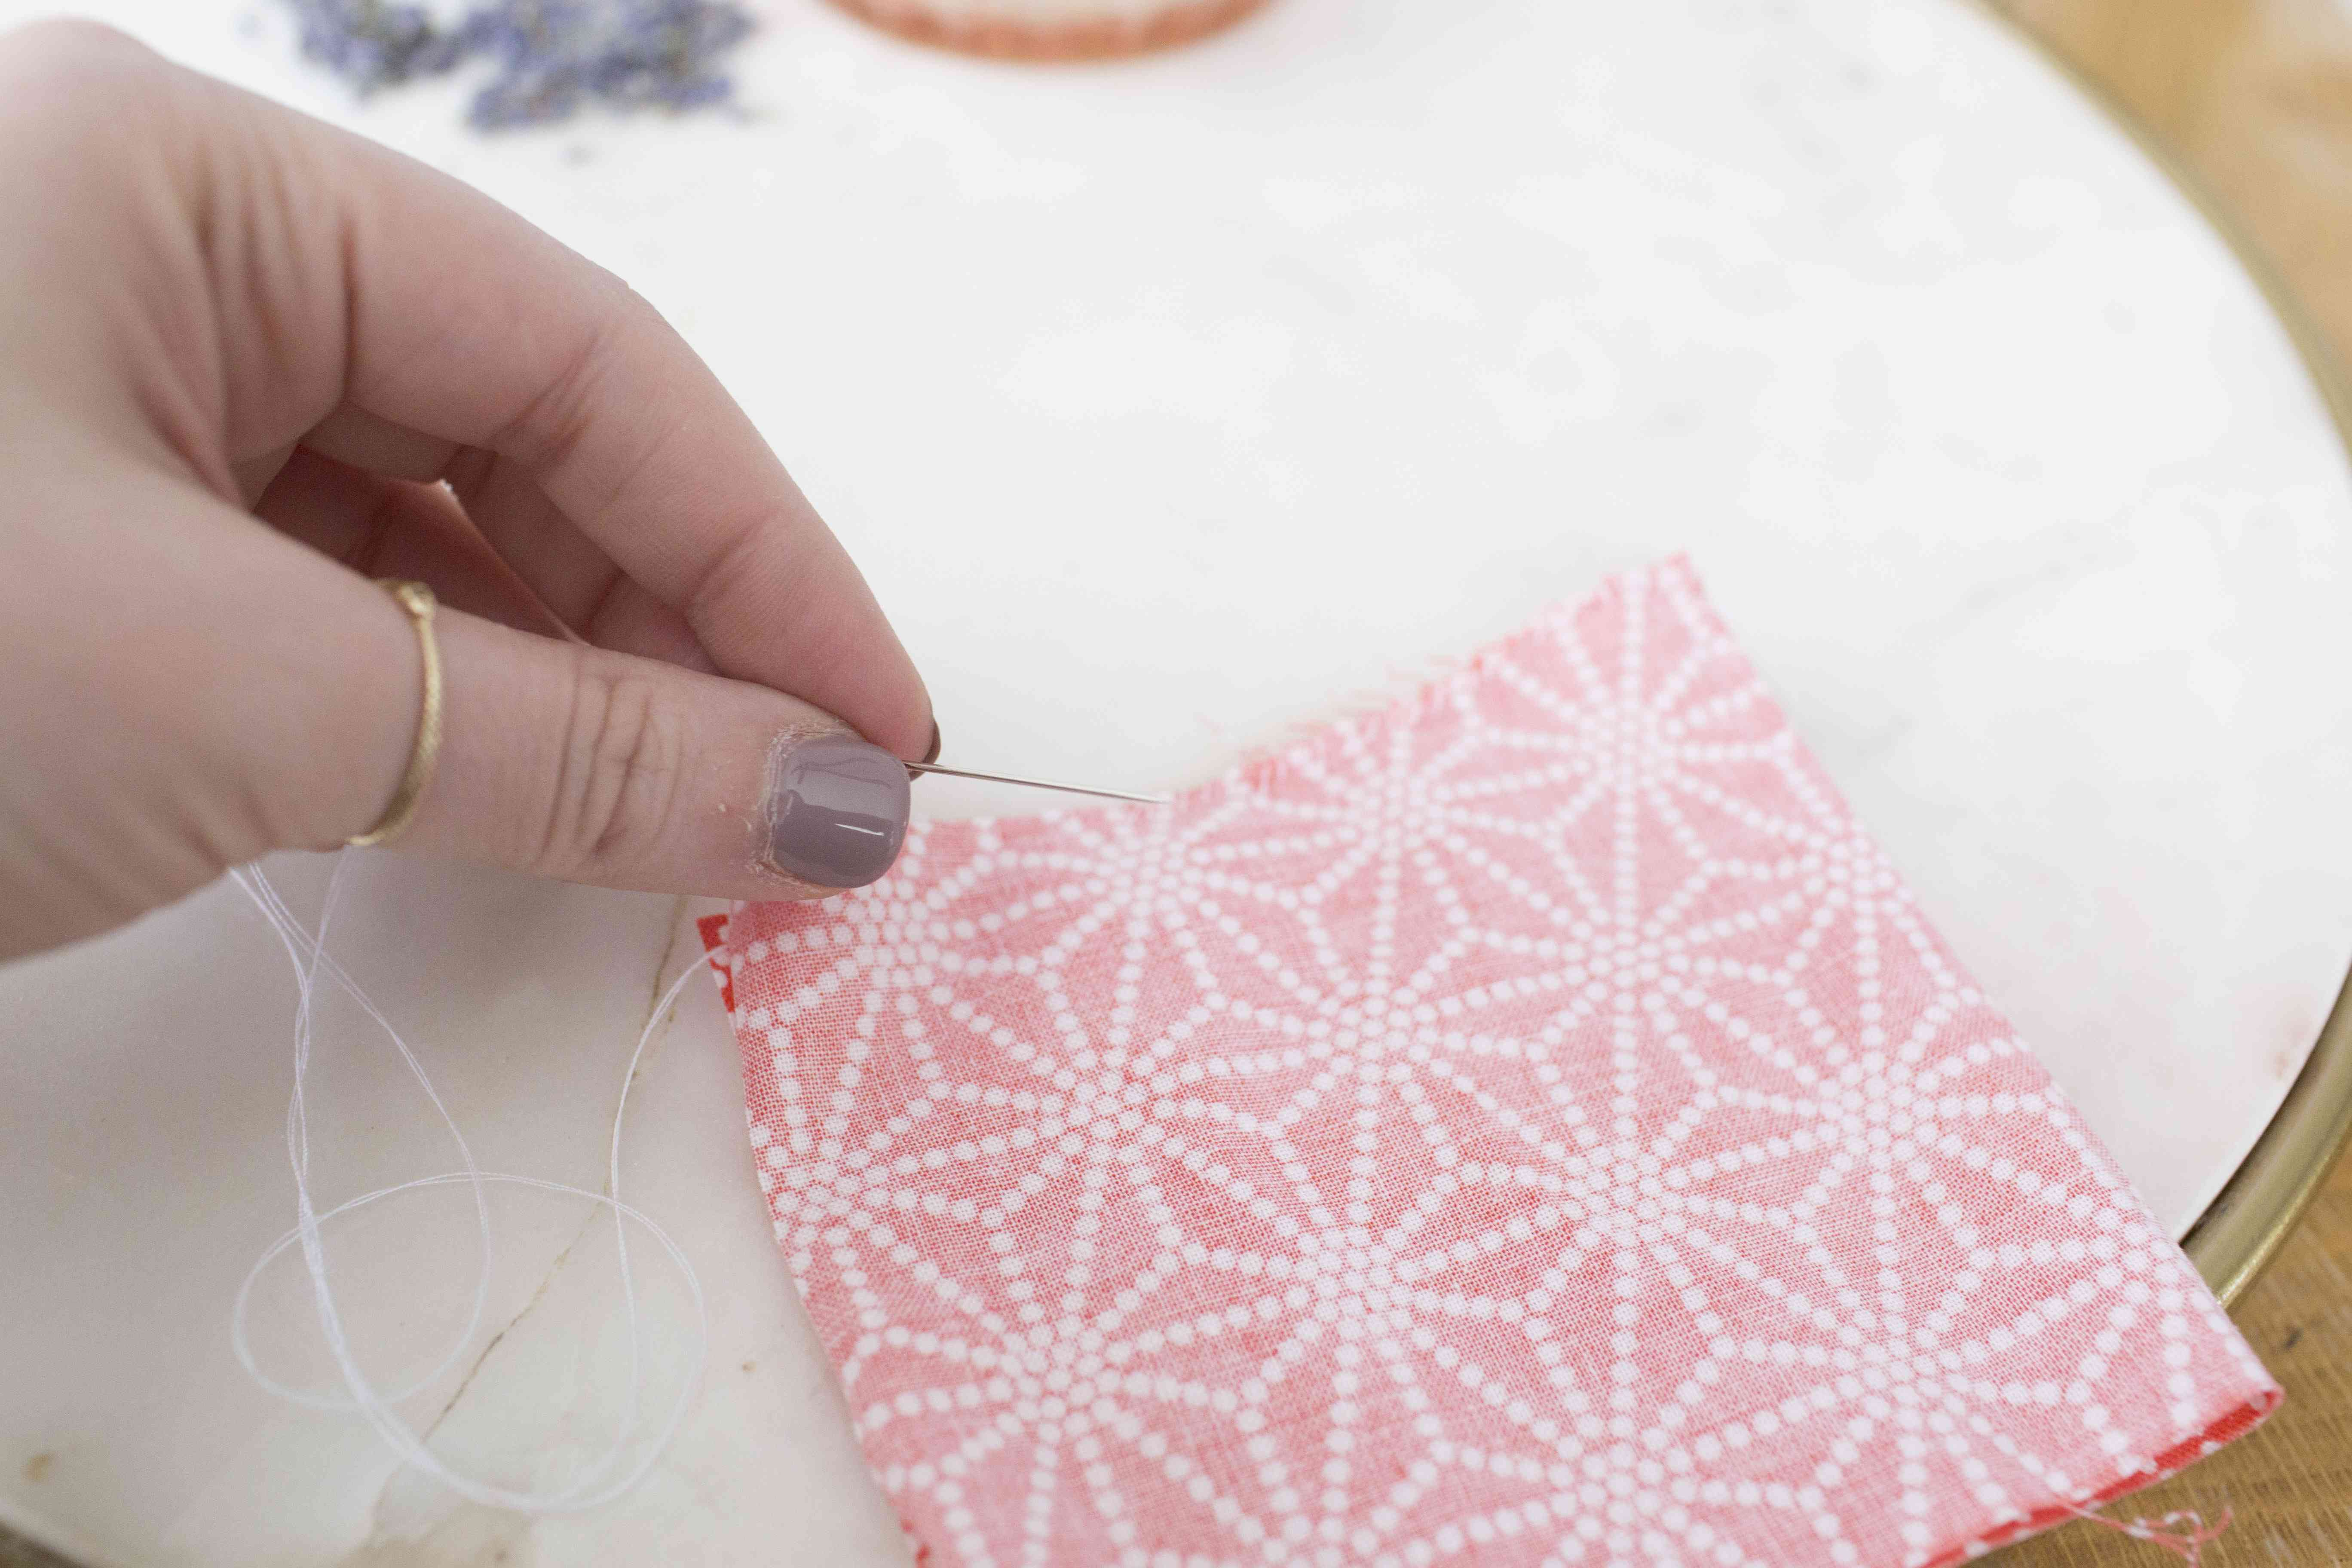 A woman's hand holding a needle fabric that is being sewn up